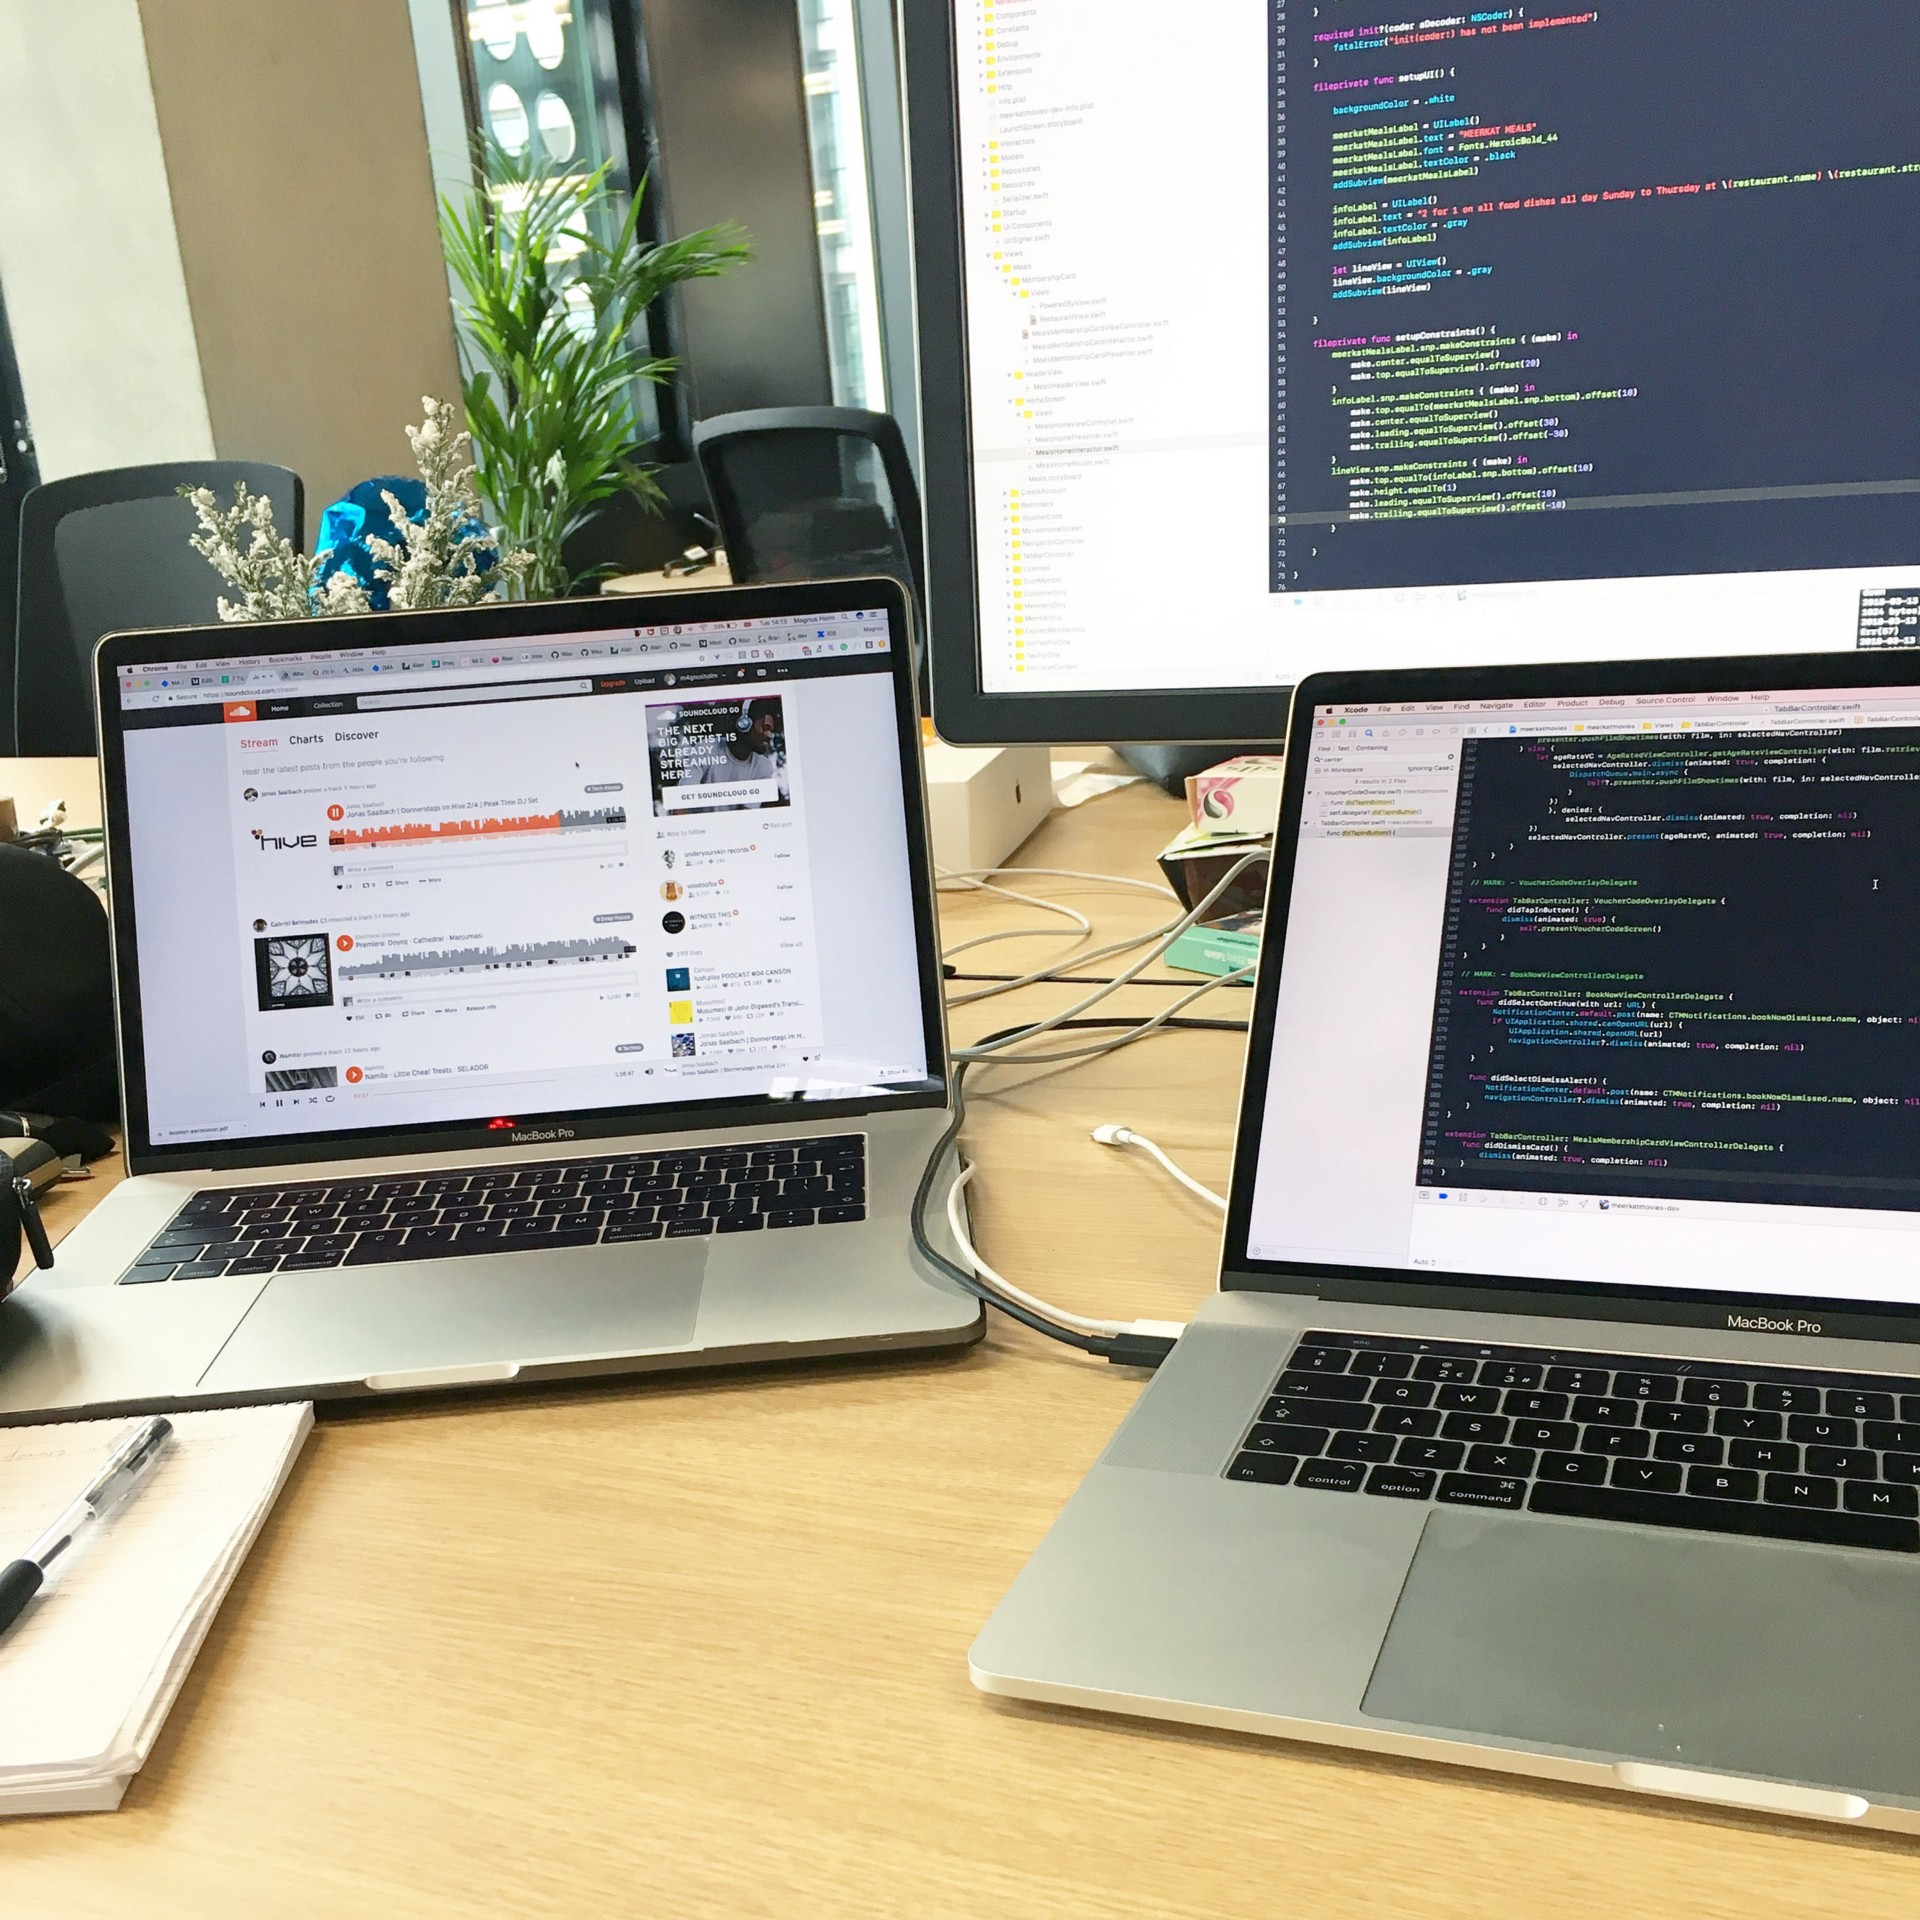 8 key learnings after 6 months as a Junior iOS developer